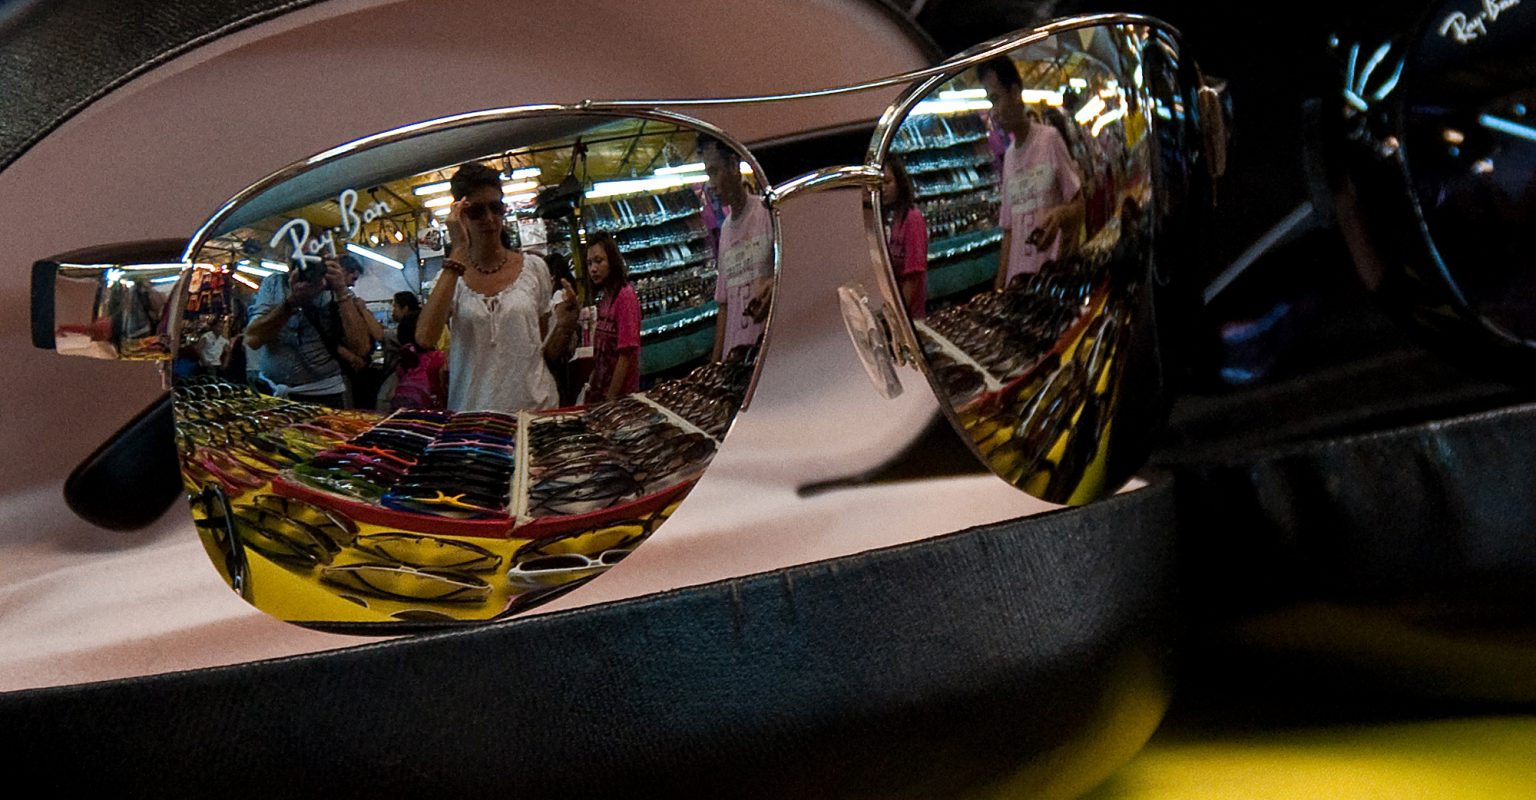 Ray-Ban sunglasses for sale at the Patpong Night Market in Bangkok